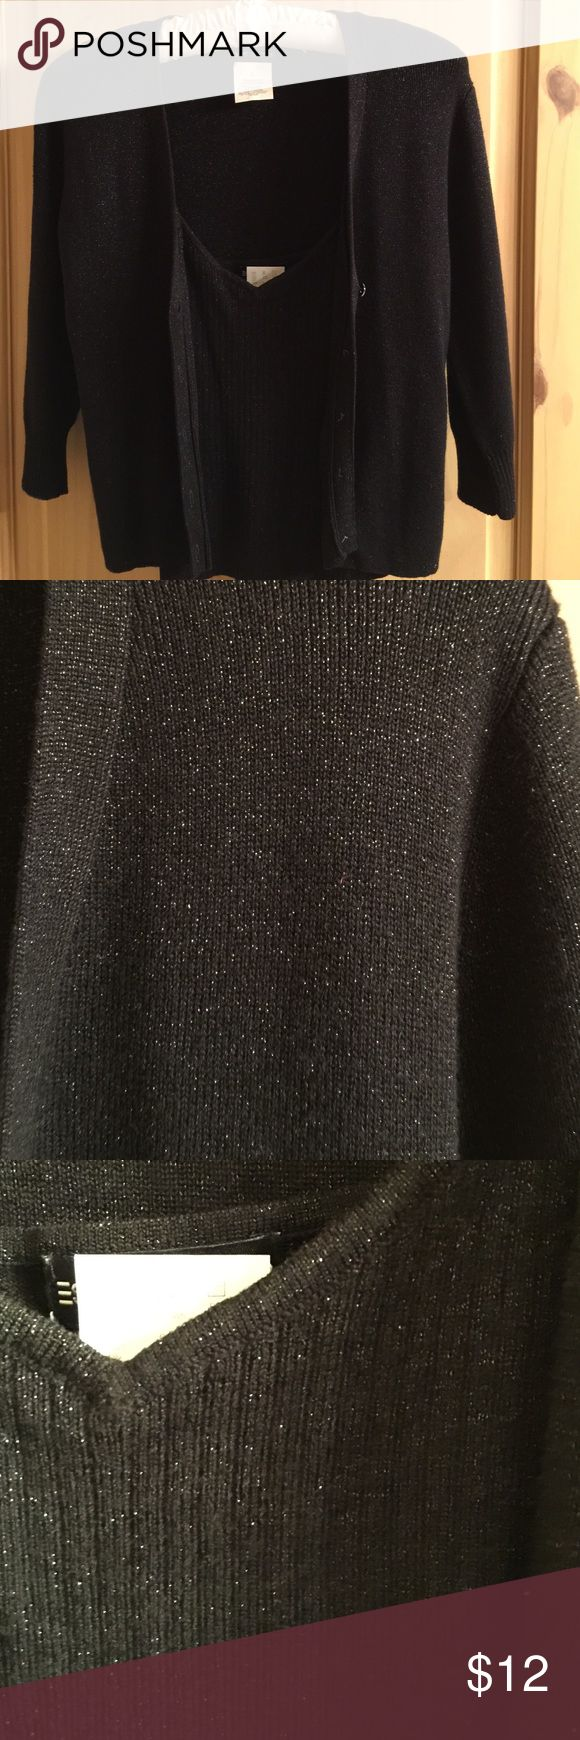 """Sparkly cami and sweater set Black sparkly (silver) cami with spaghetti straps and sweater with 5 buttons. Cami is v neck. Sweater has 3/4 length sleeves that measure 16"""". Overall length is 21"""". Good condition. Espirit de Corp Tops Camisoles"""